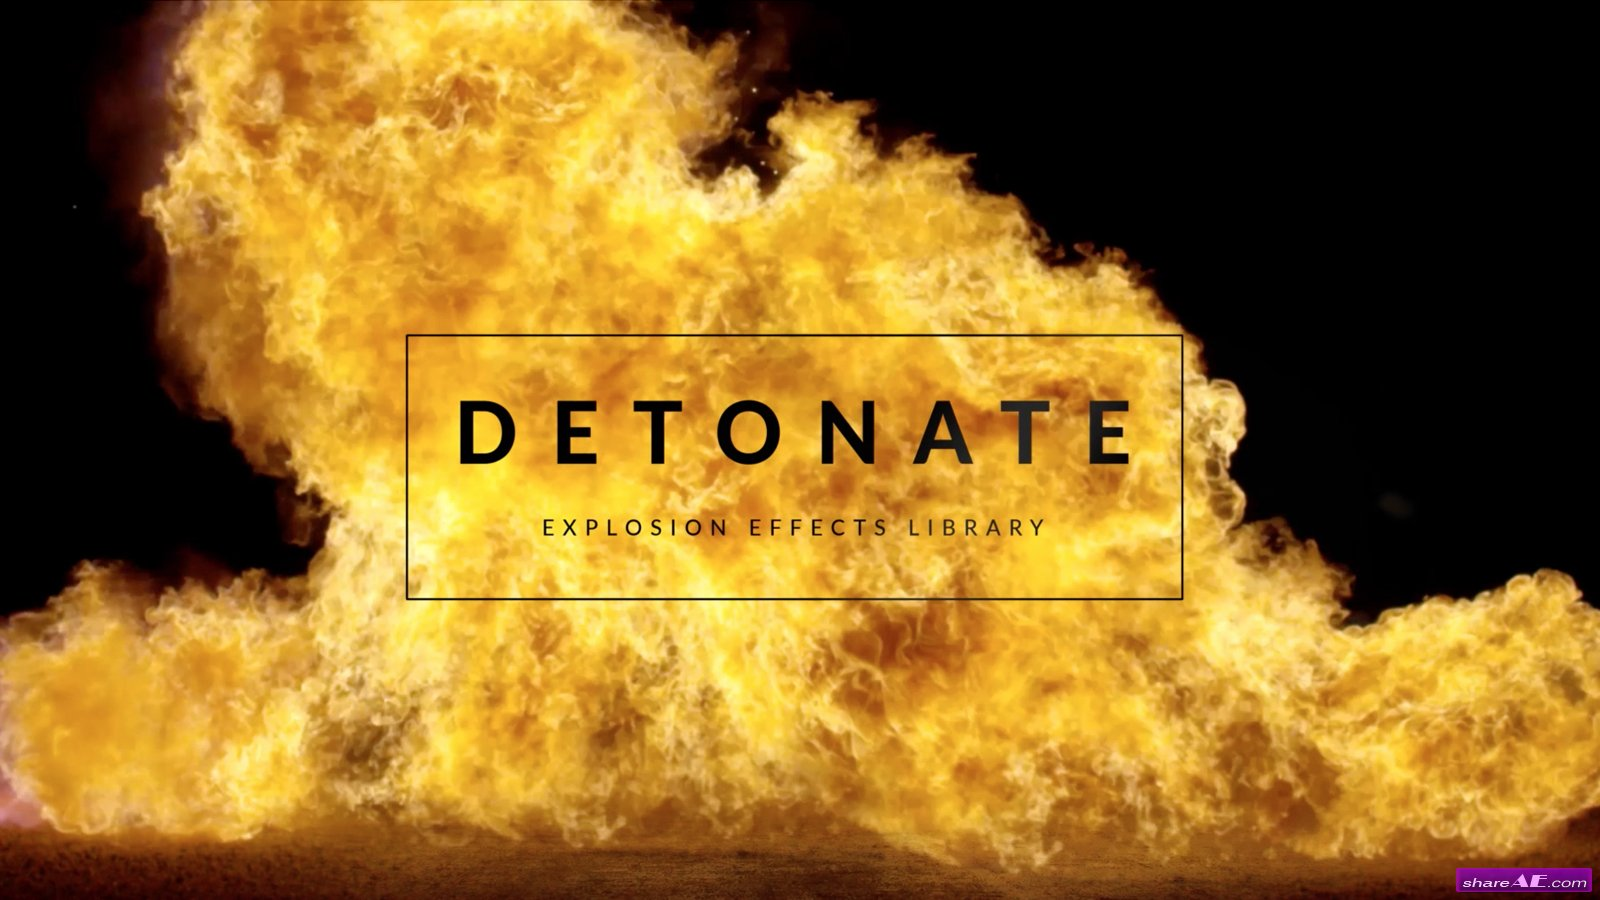 Detonate - 50+ Explosion Effects (RocketStock)